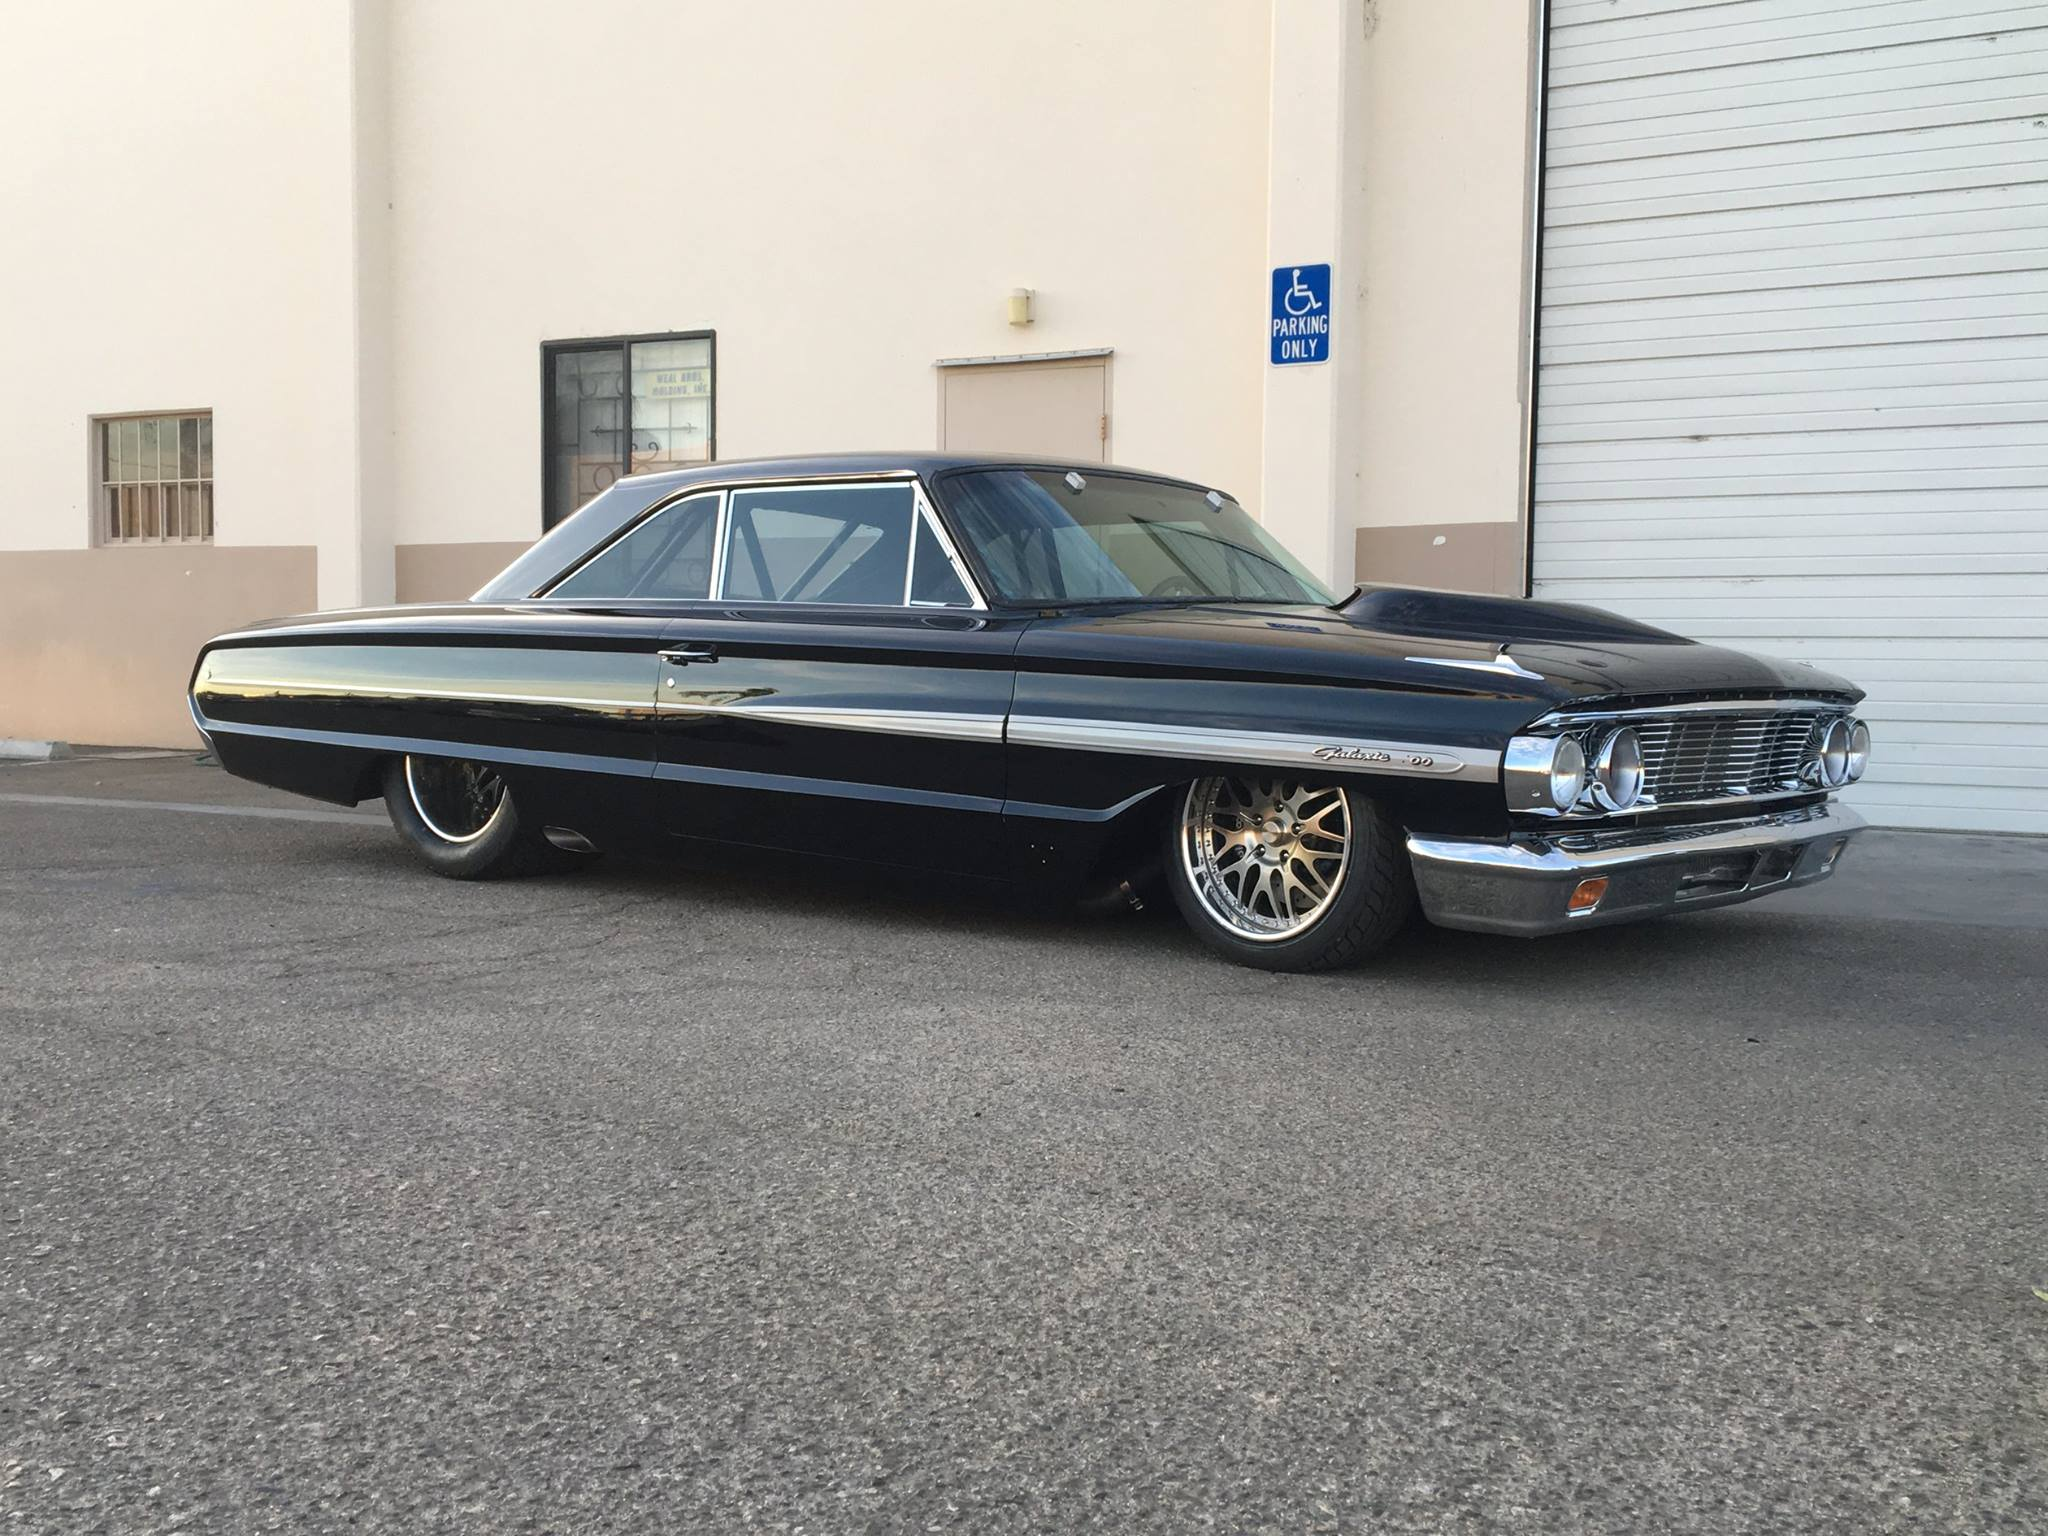 1964 Ford Galaxie with a Twin Turbo Cammer V8 03 1964 galaxie with a twin turbo cammer v8 engine swap depot